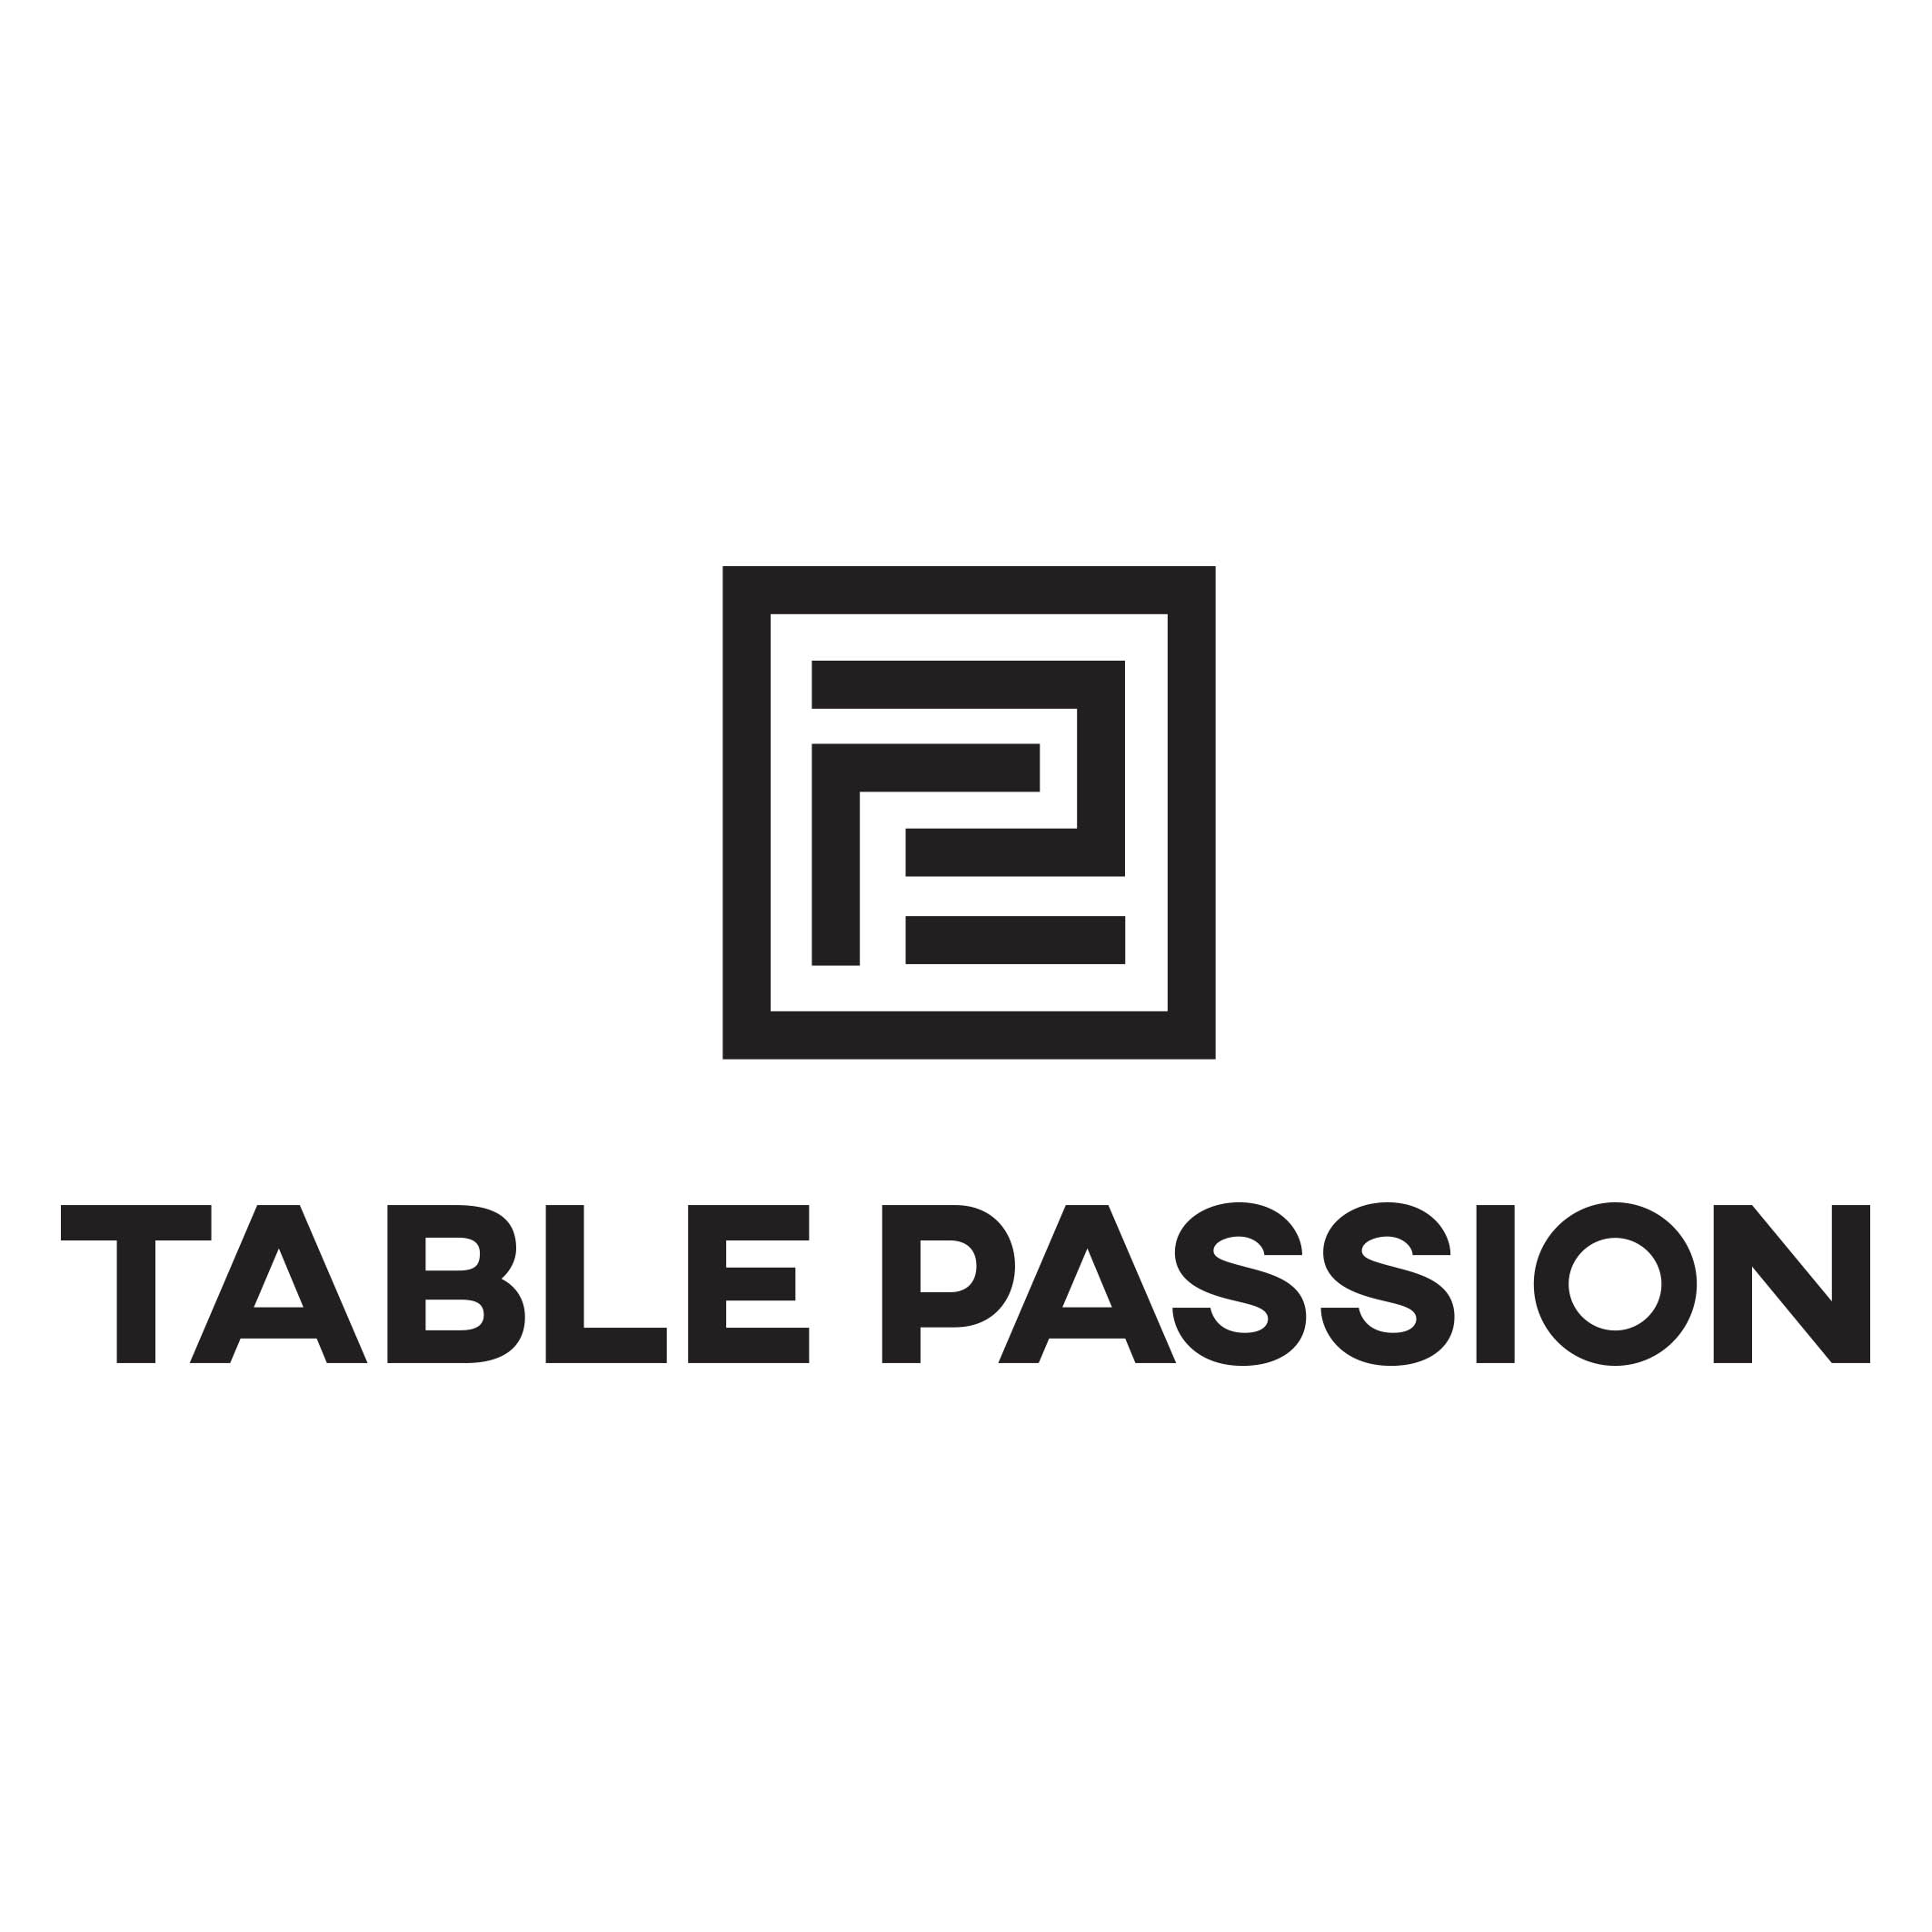 LOGO TABLE PASSION